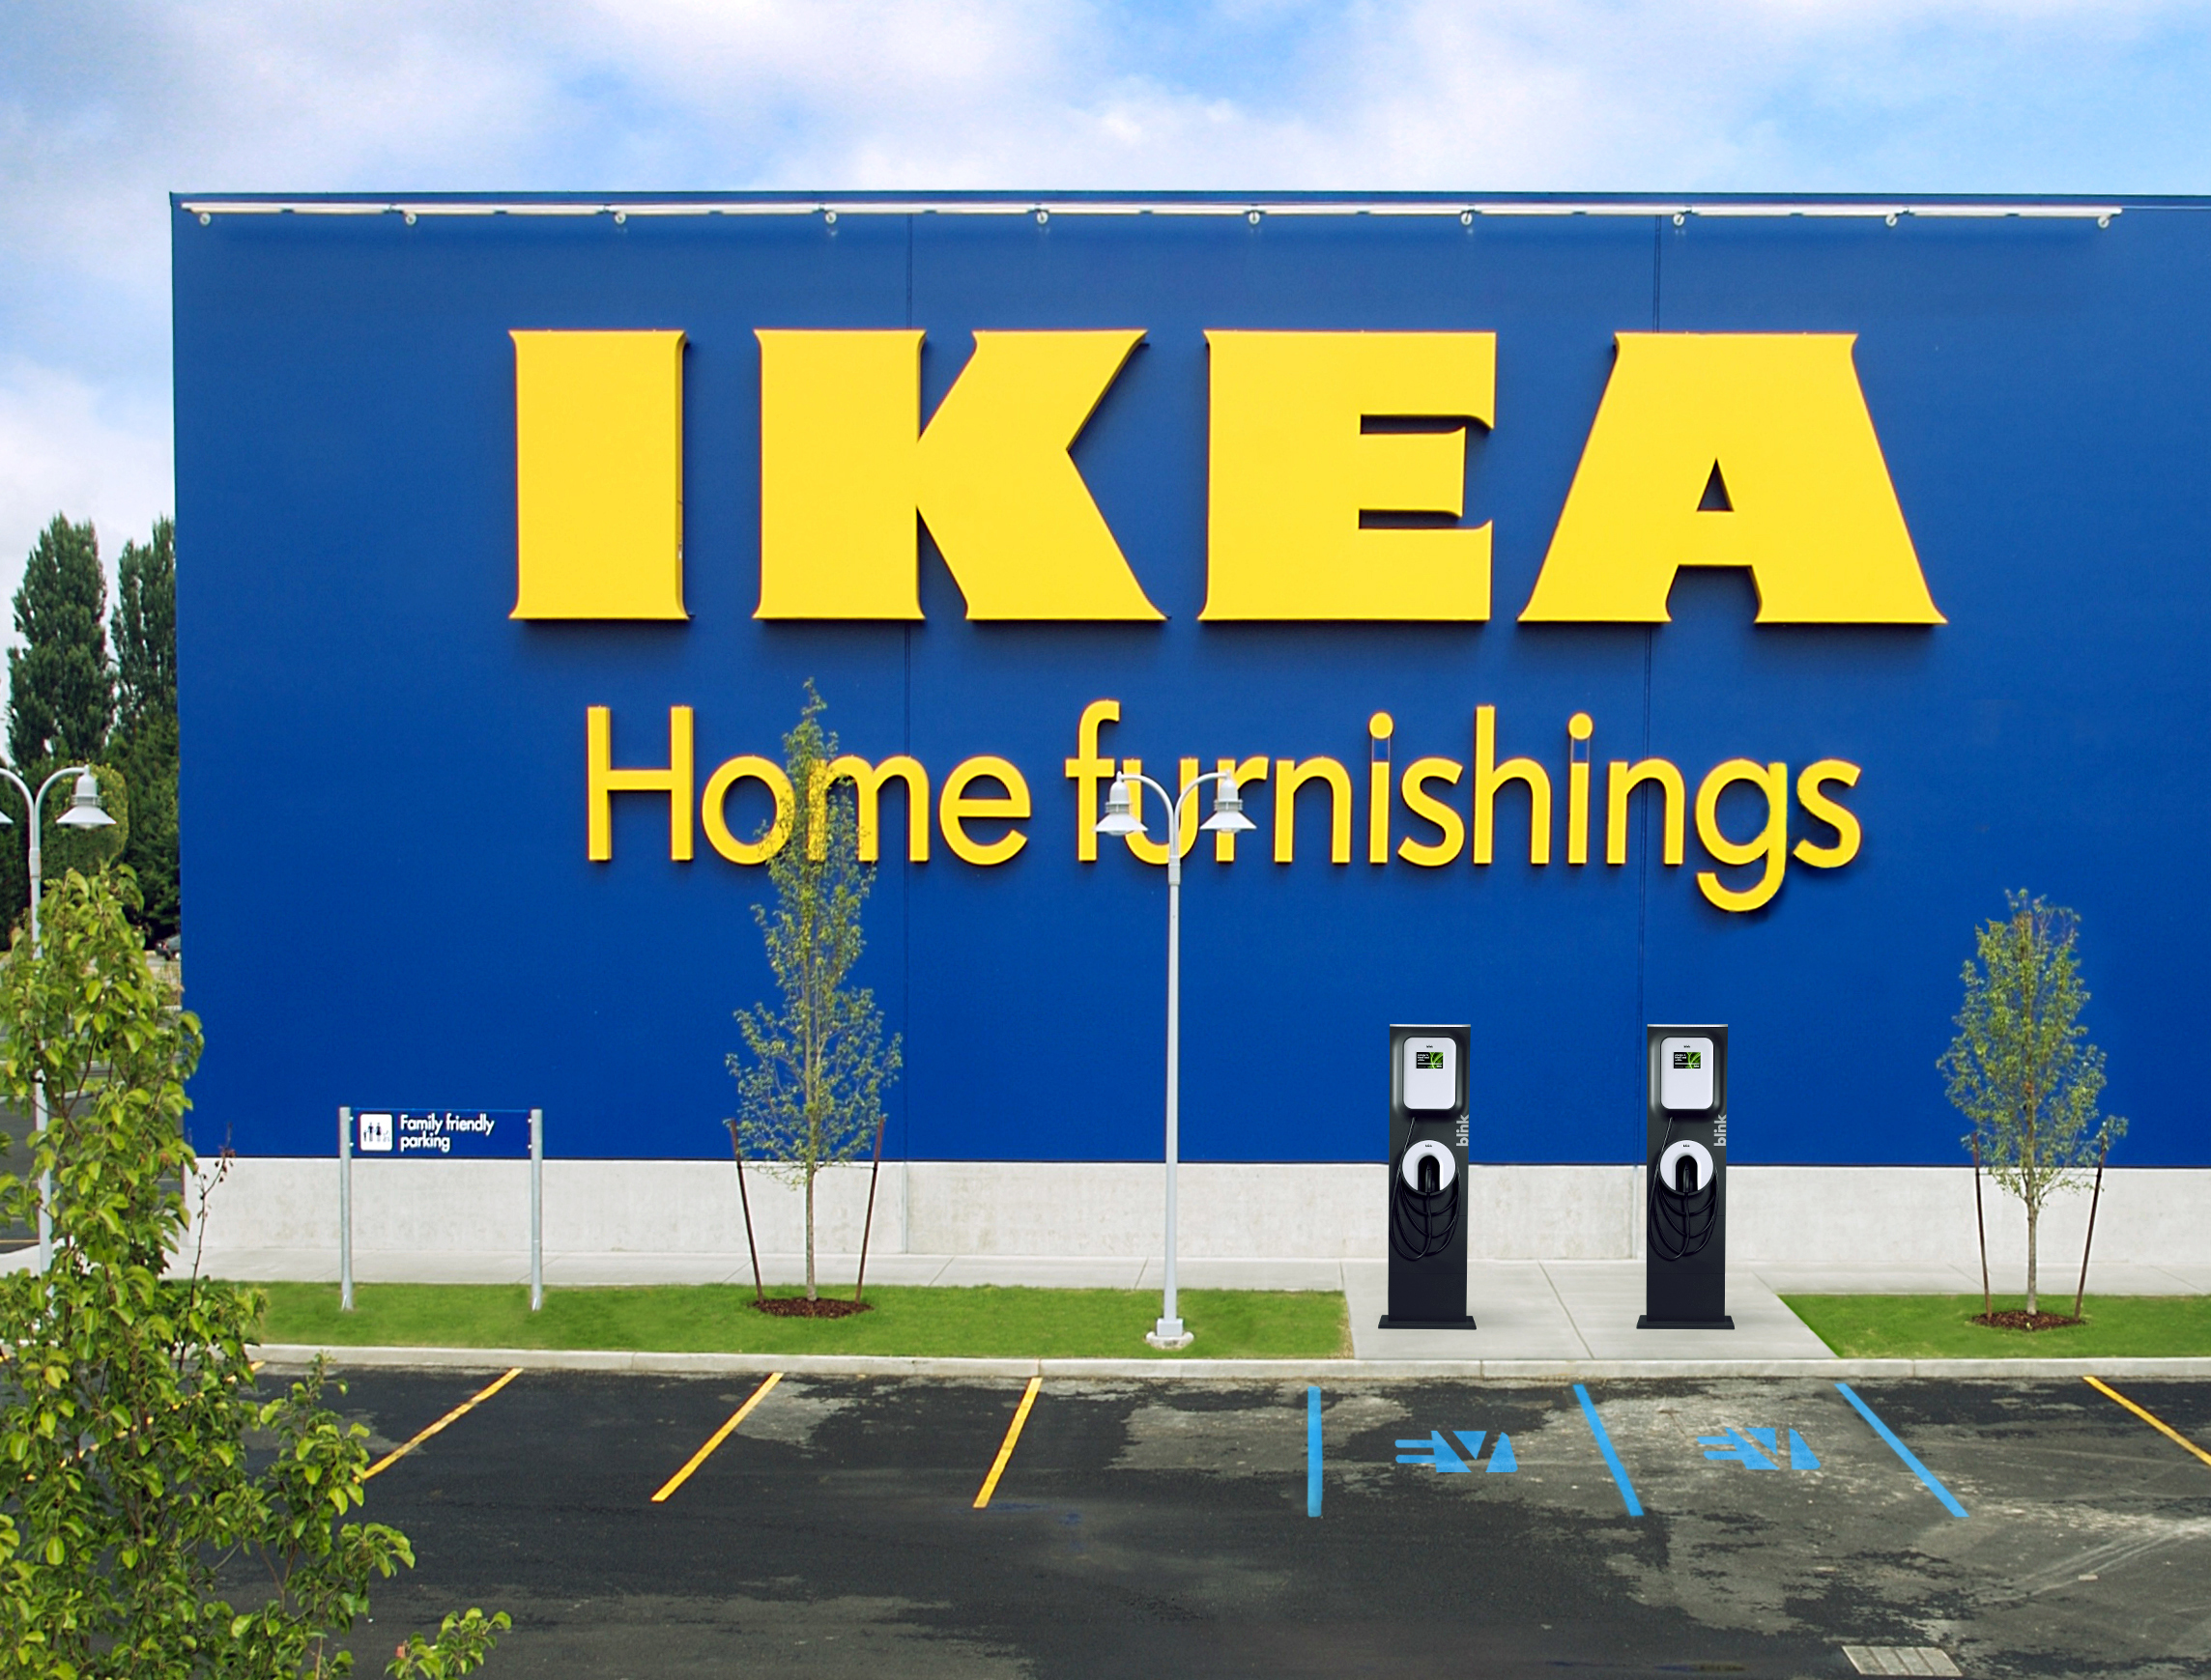 Ikea Frisco Ikea To Grow Presence Of Electric Vehicle Charging Stations With